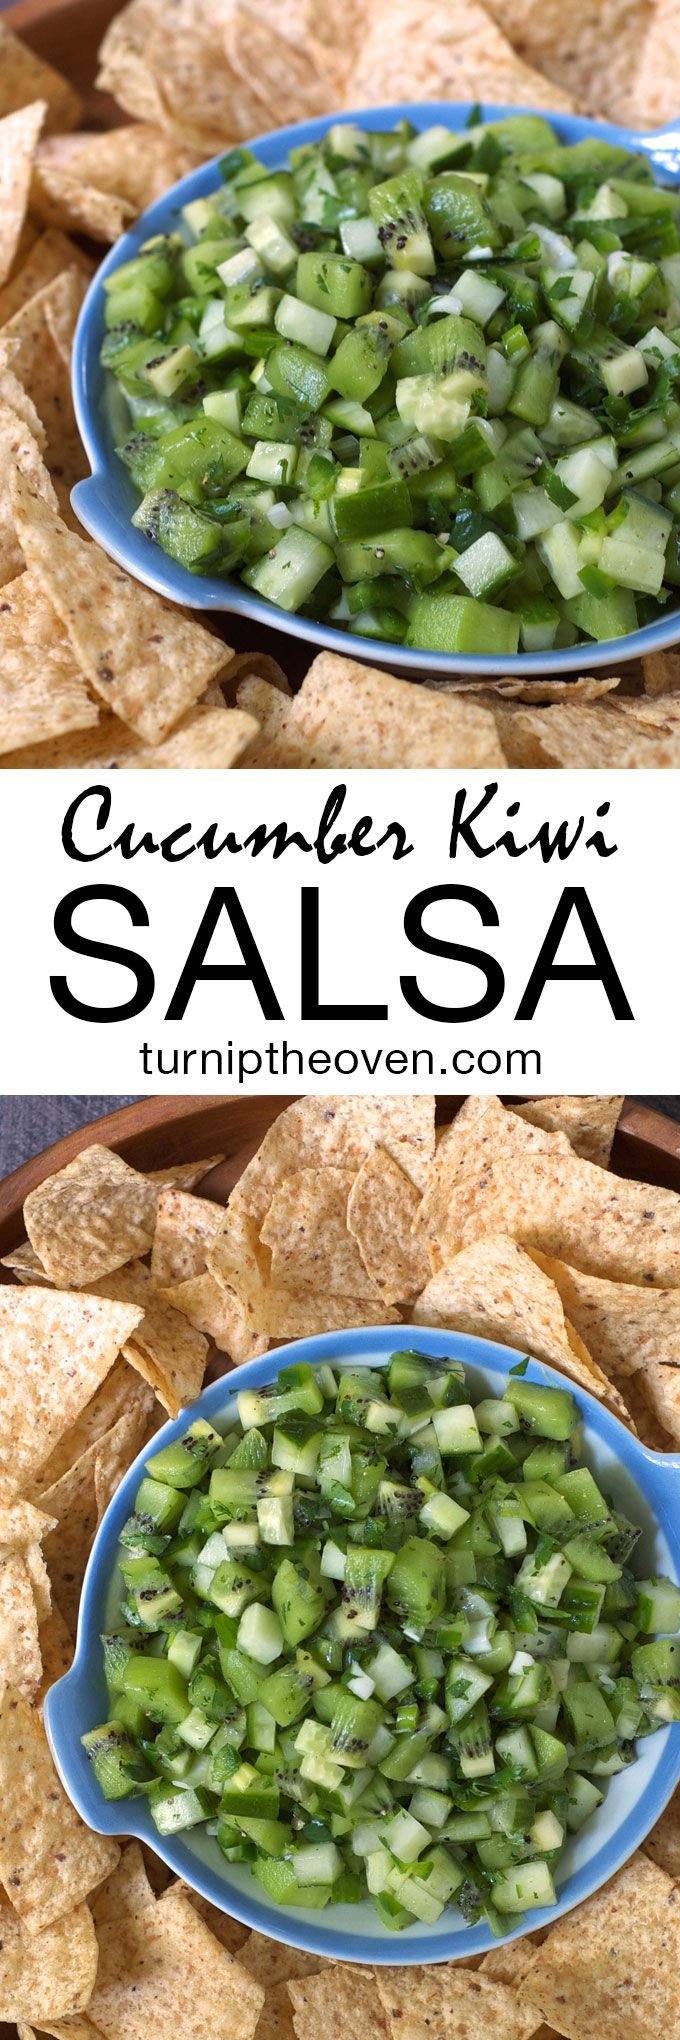 This crisp, refreshing salsa is bursting with the flavors of juicy kiwi, cool cucumber, tart lime, and spicy jalapeño. Try it with chips or as a topping for grilled chicken or fish.